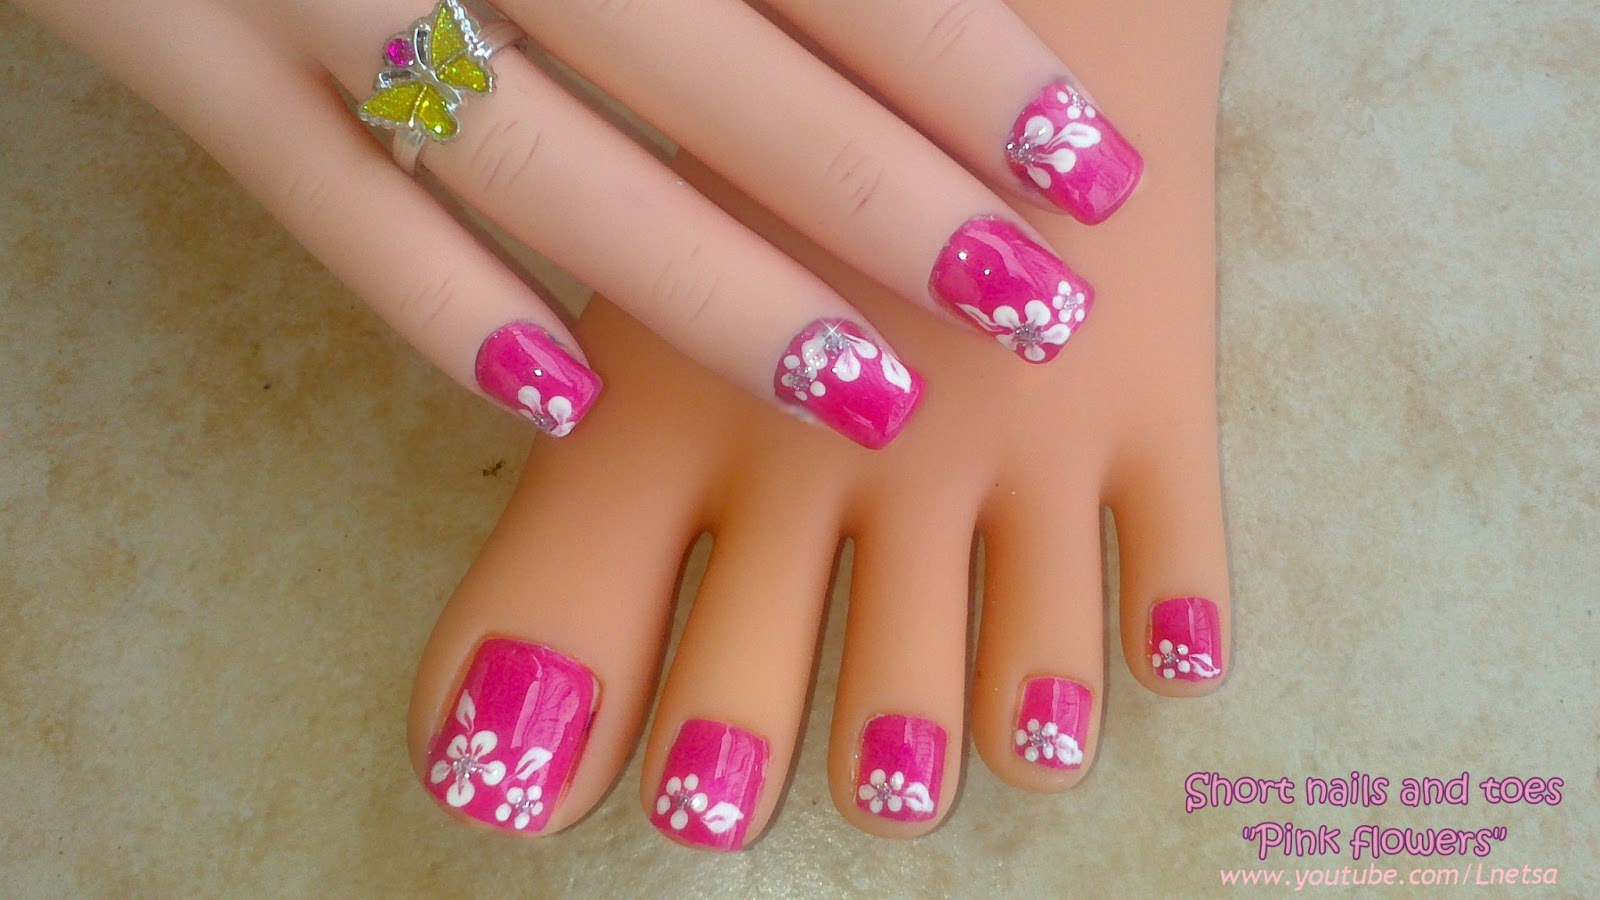 - Lnetsa 's nailart: Toe nail design + short nails version ...